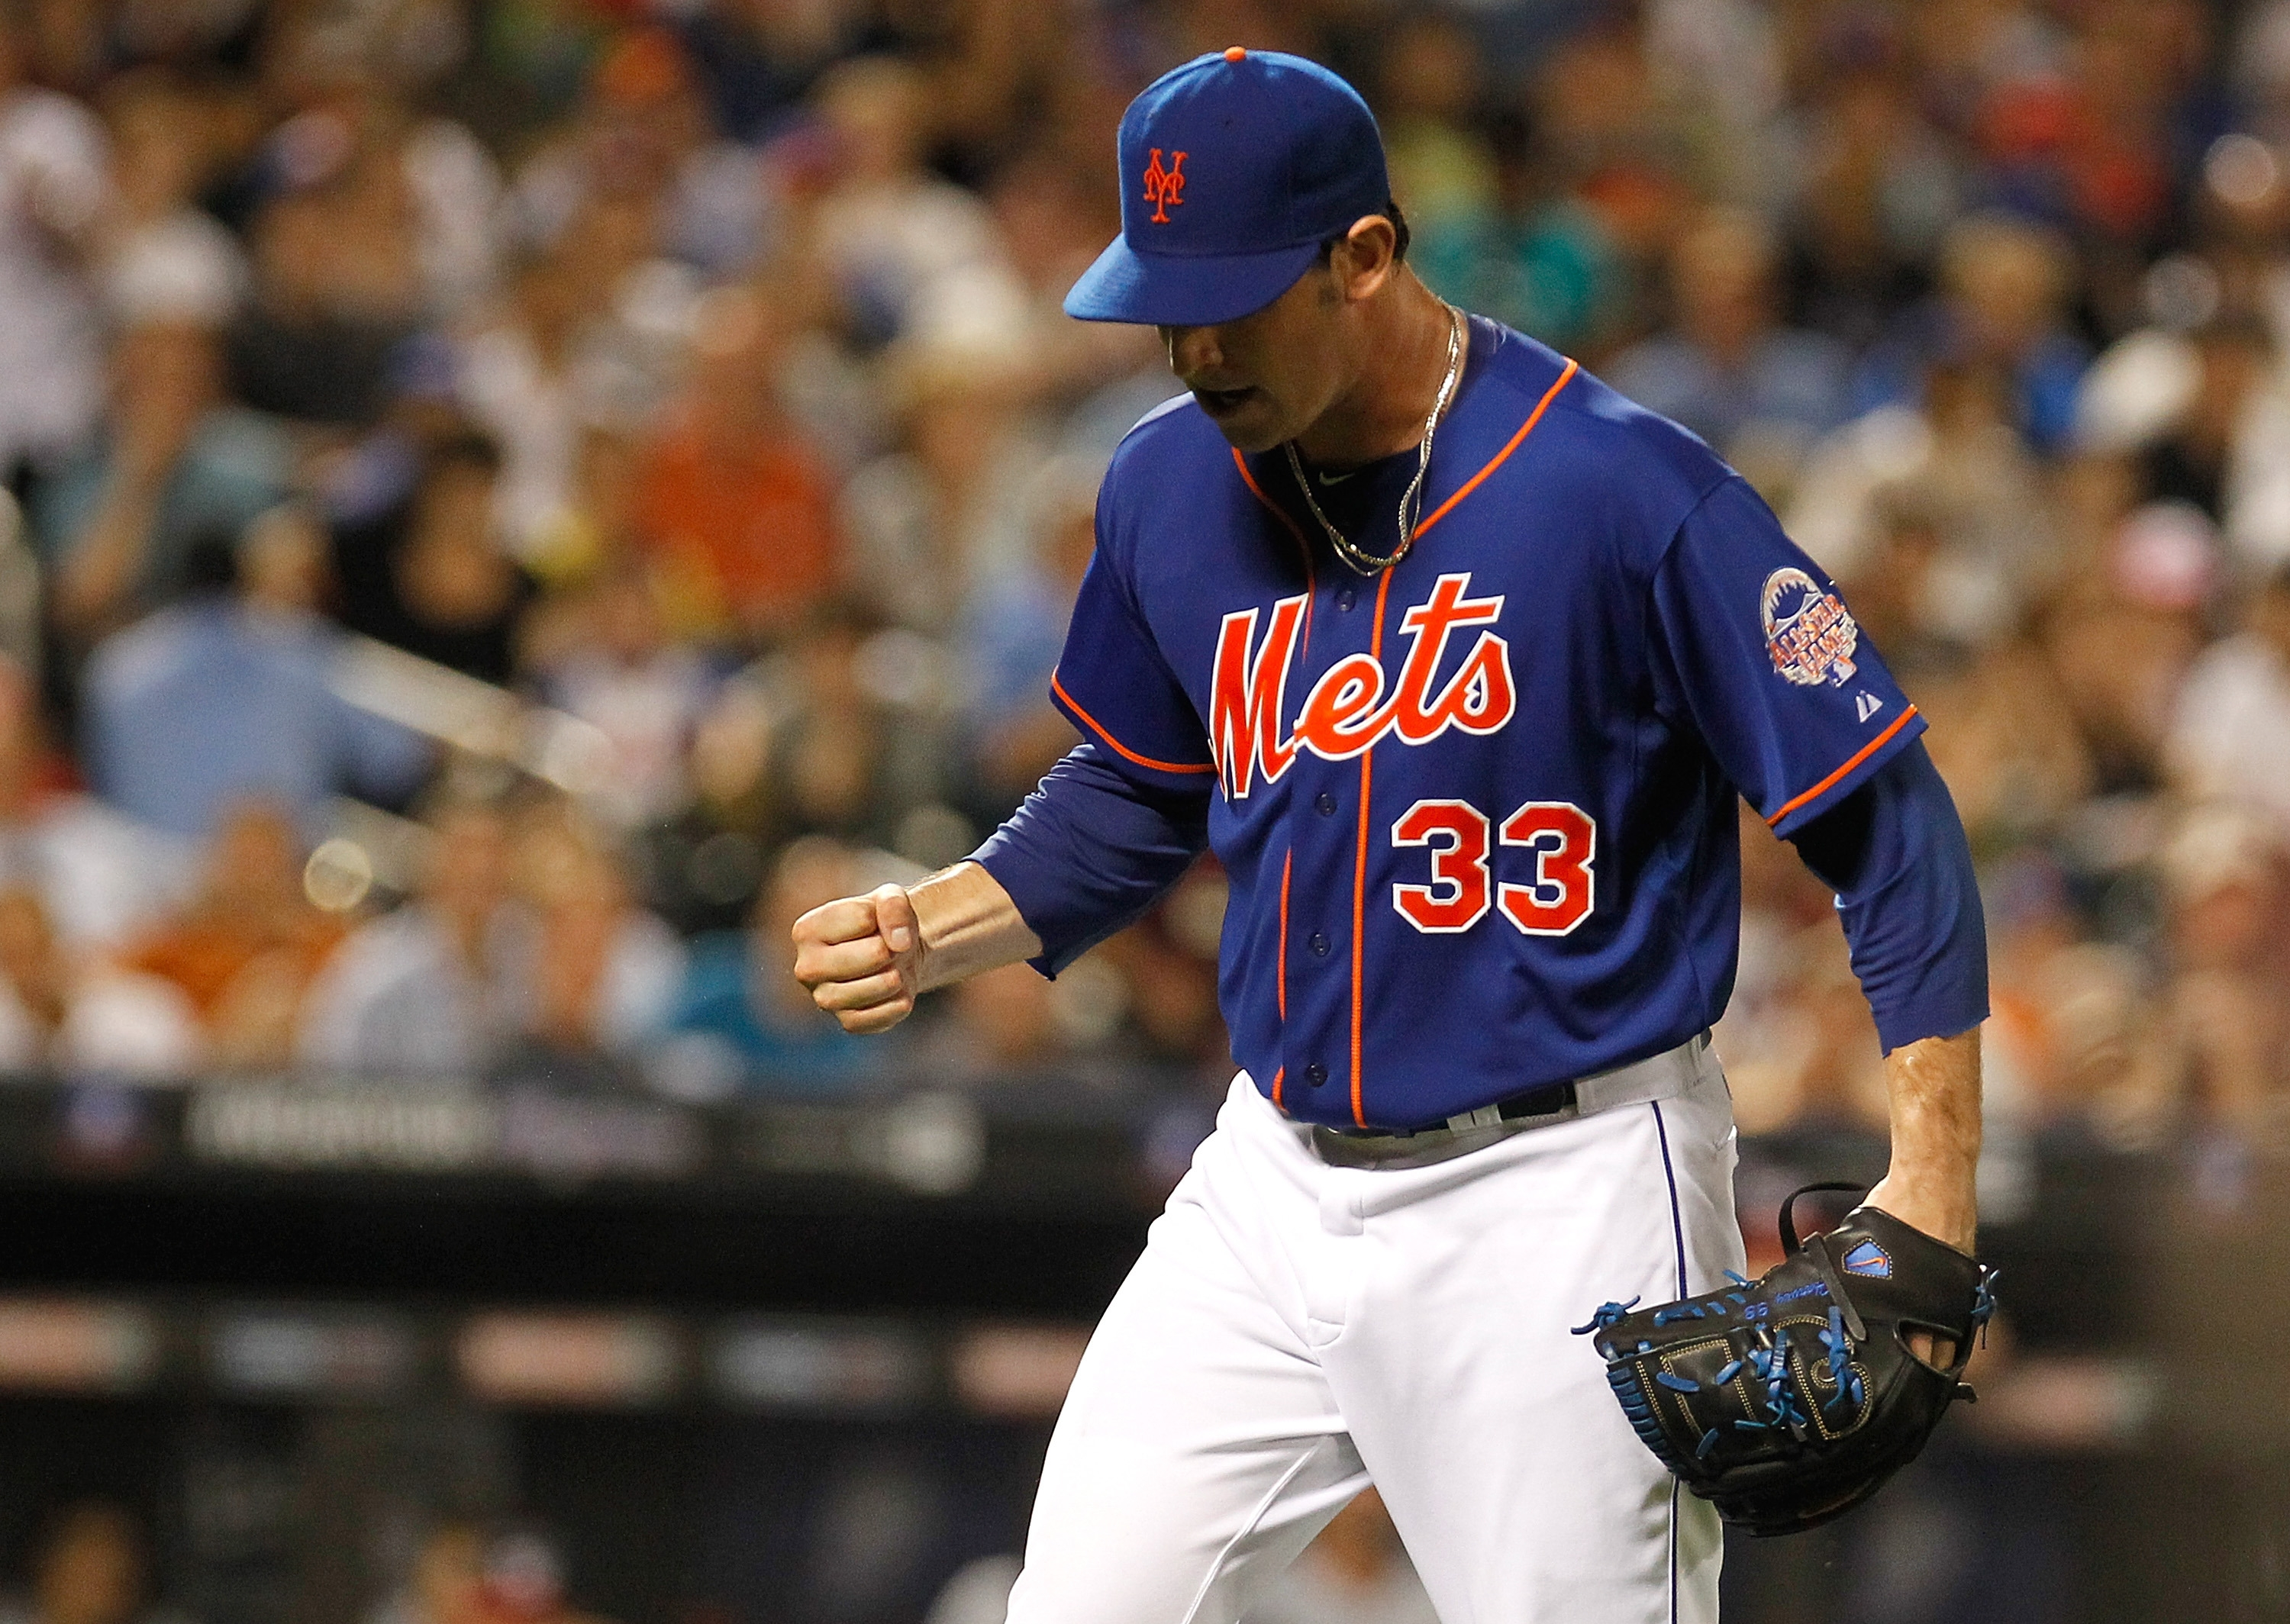 Matt Harvey (7-1) leads the National League in earned-run average and strikeouts this year, but he went just 7-5 for the Bisons last year with a 3.68 ERA.